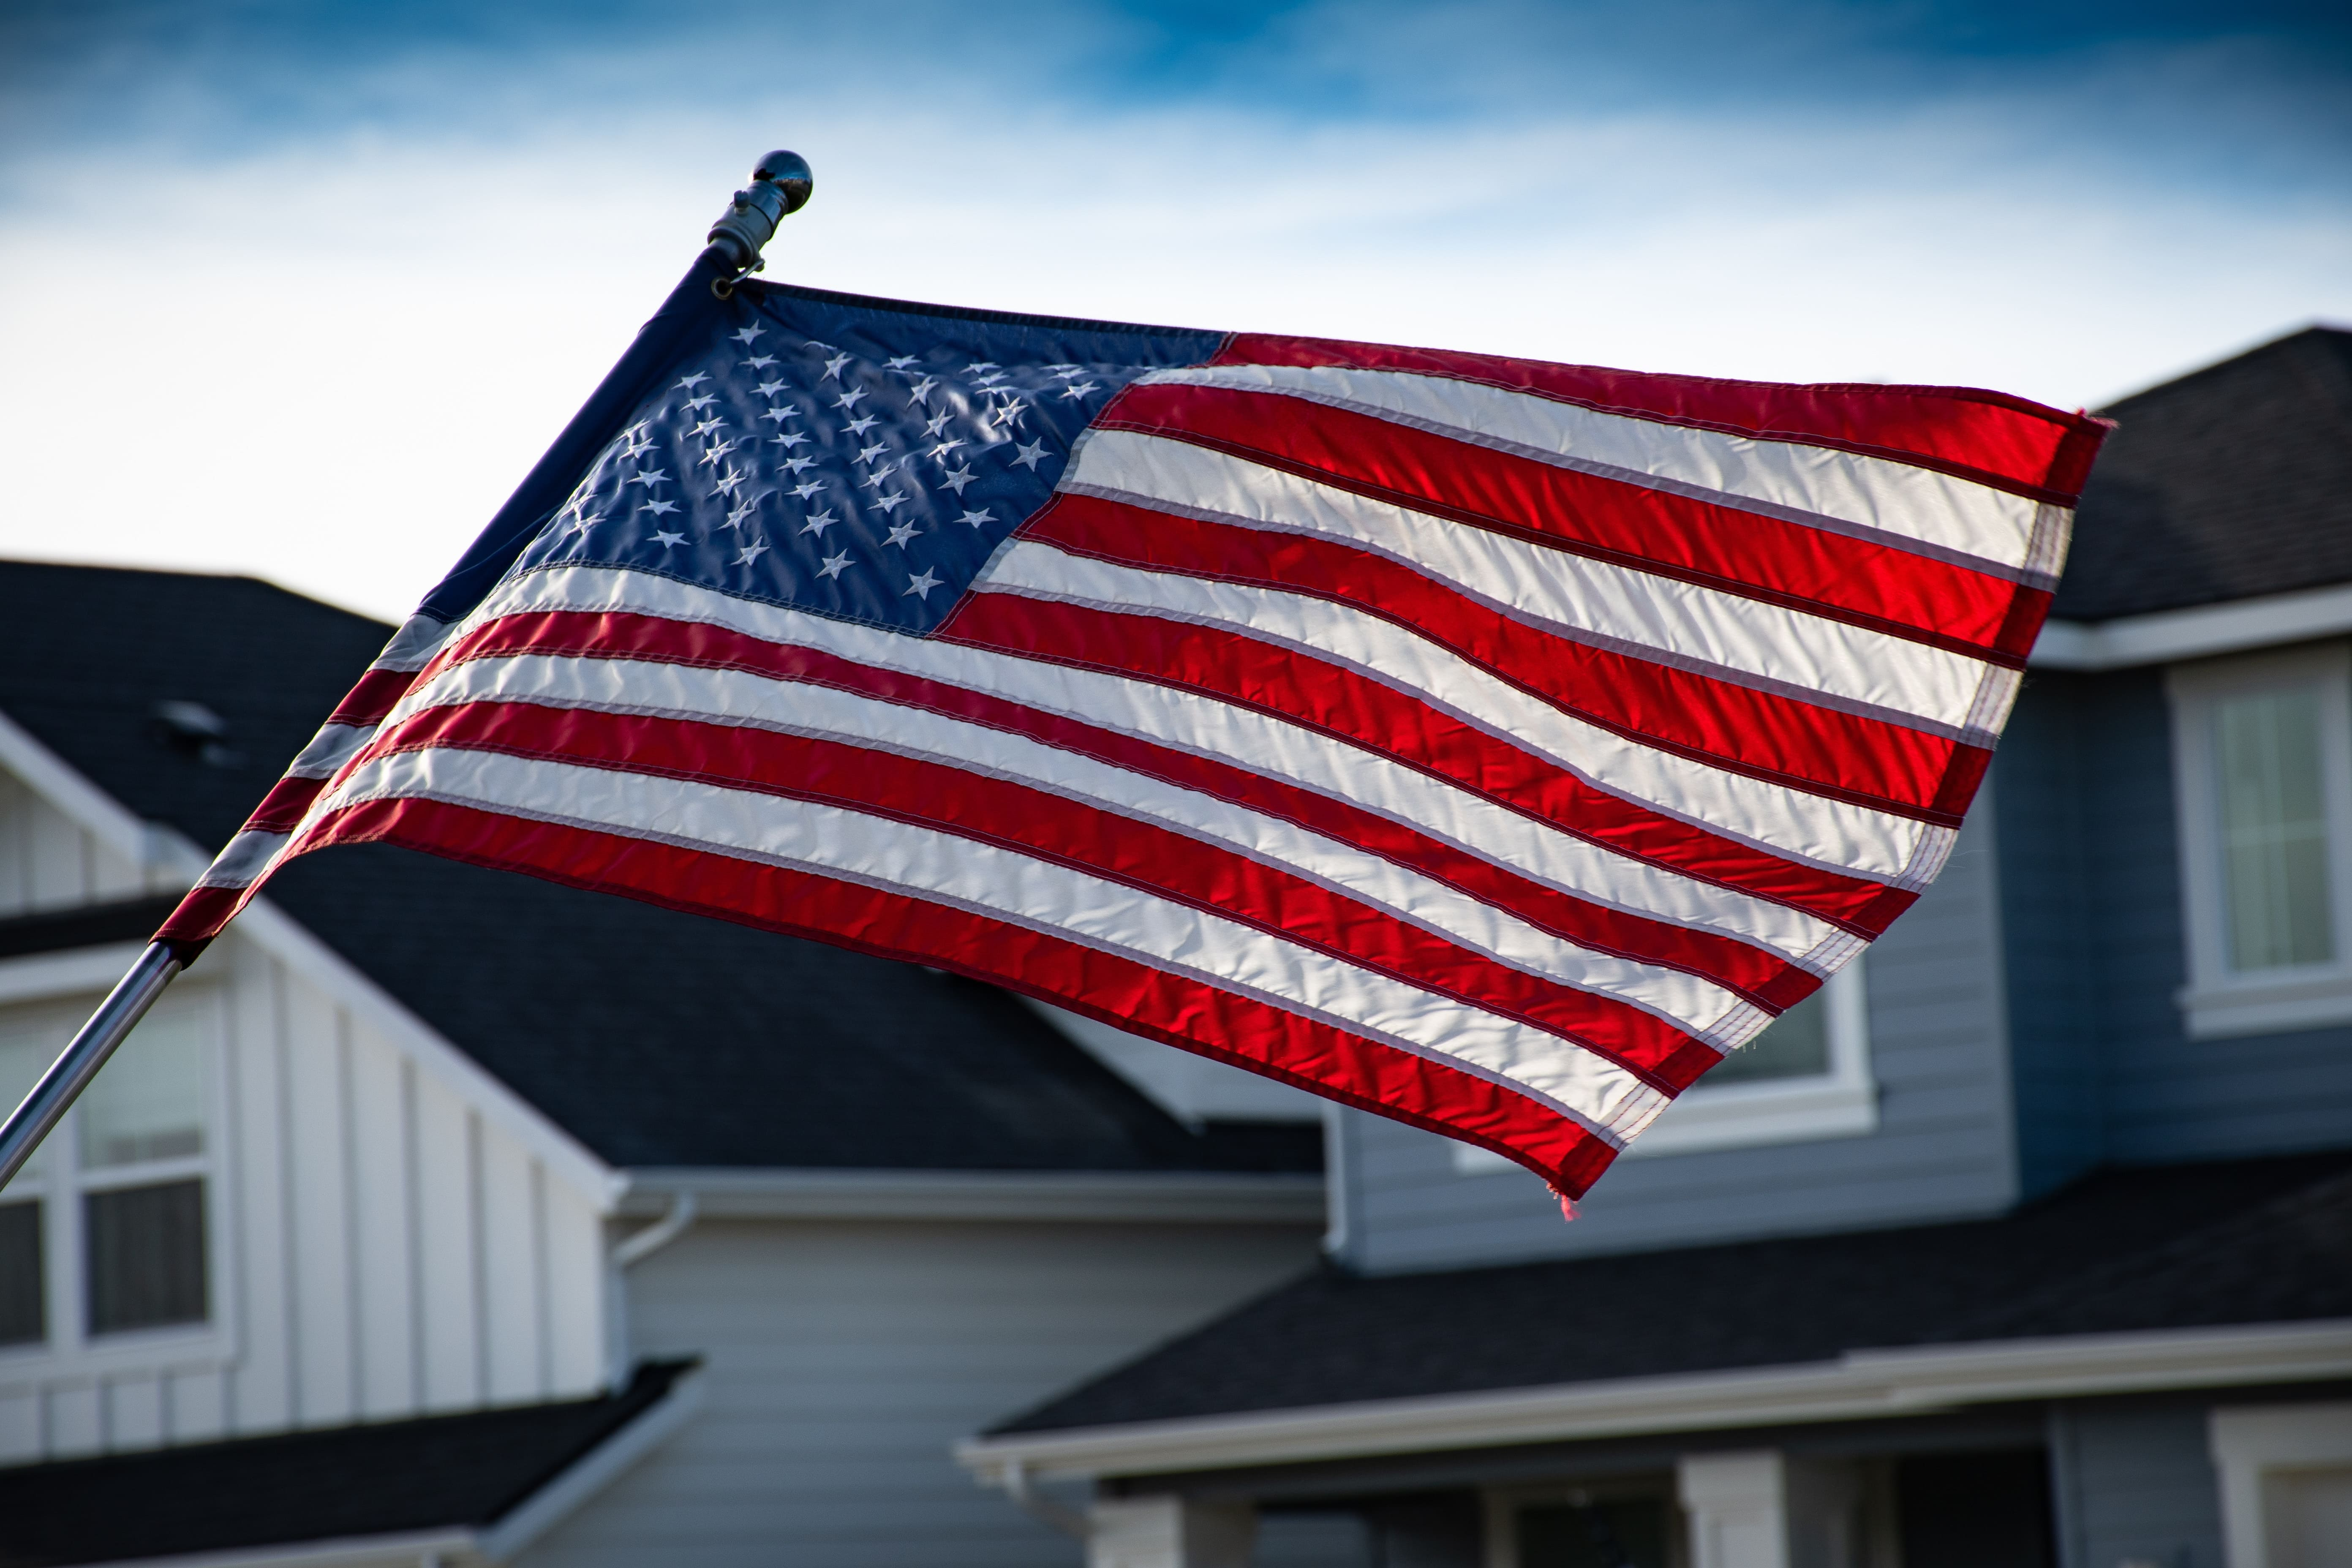 An American flag blowing in the wind with a row of homes in the background